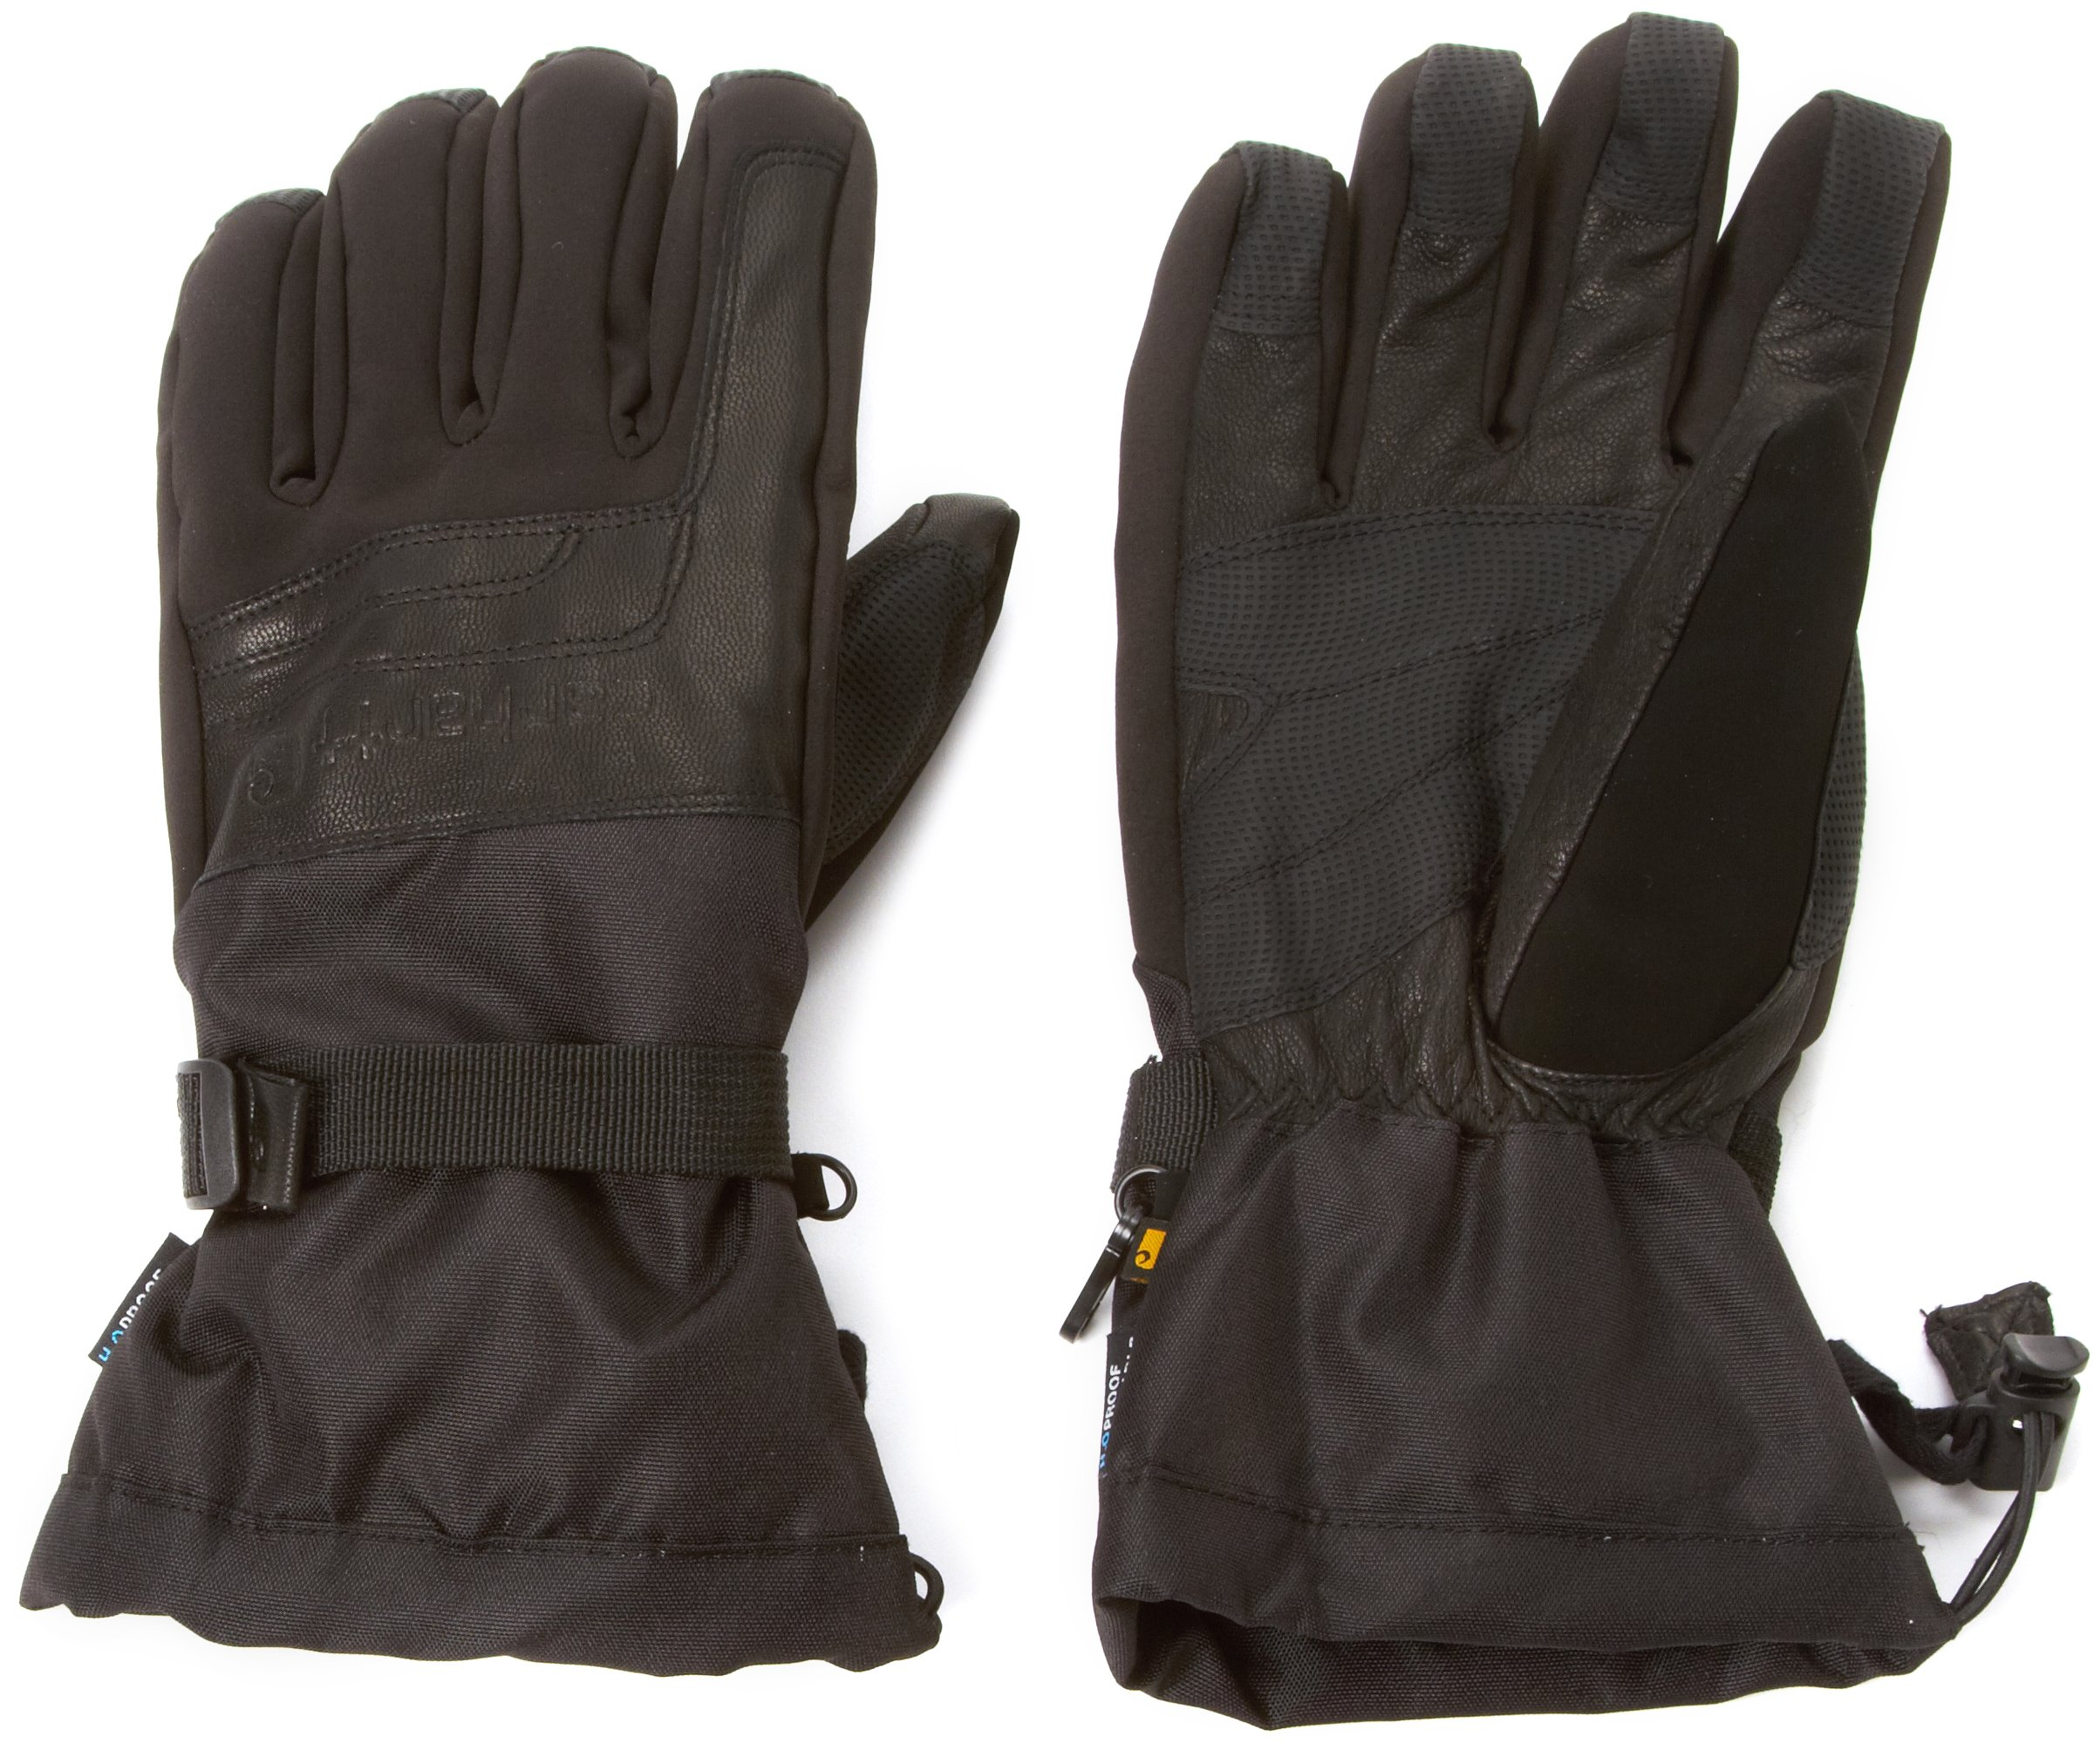 Carhartt Men's Cold Snap Insulated Work Glove, Black, XX-Large